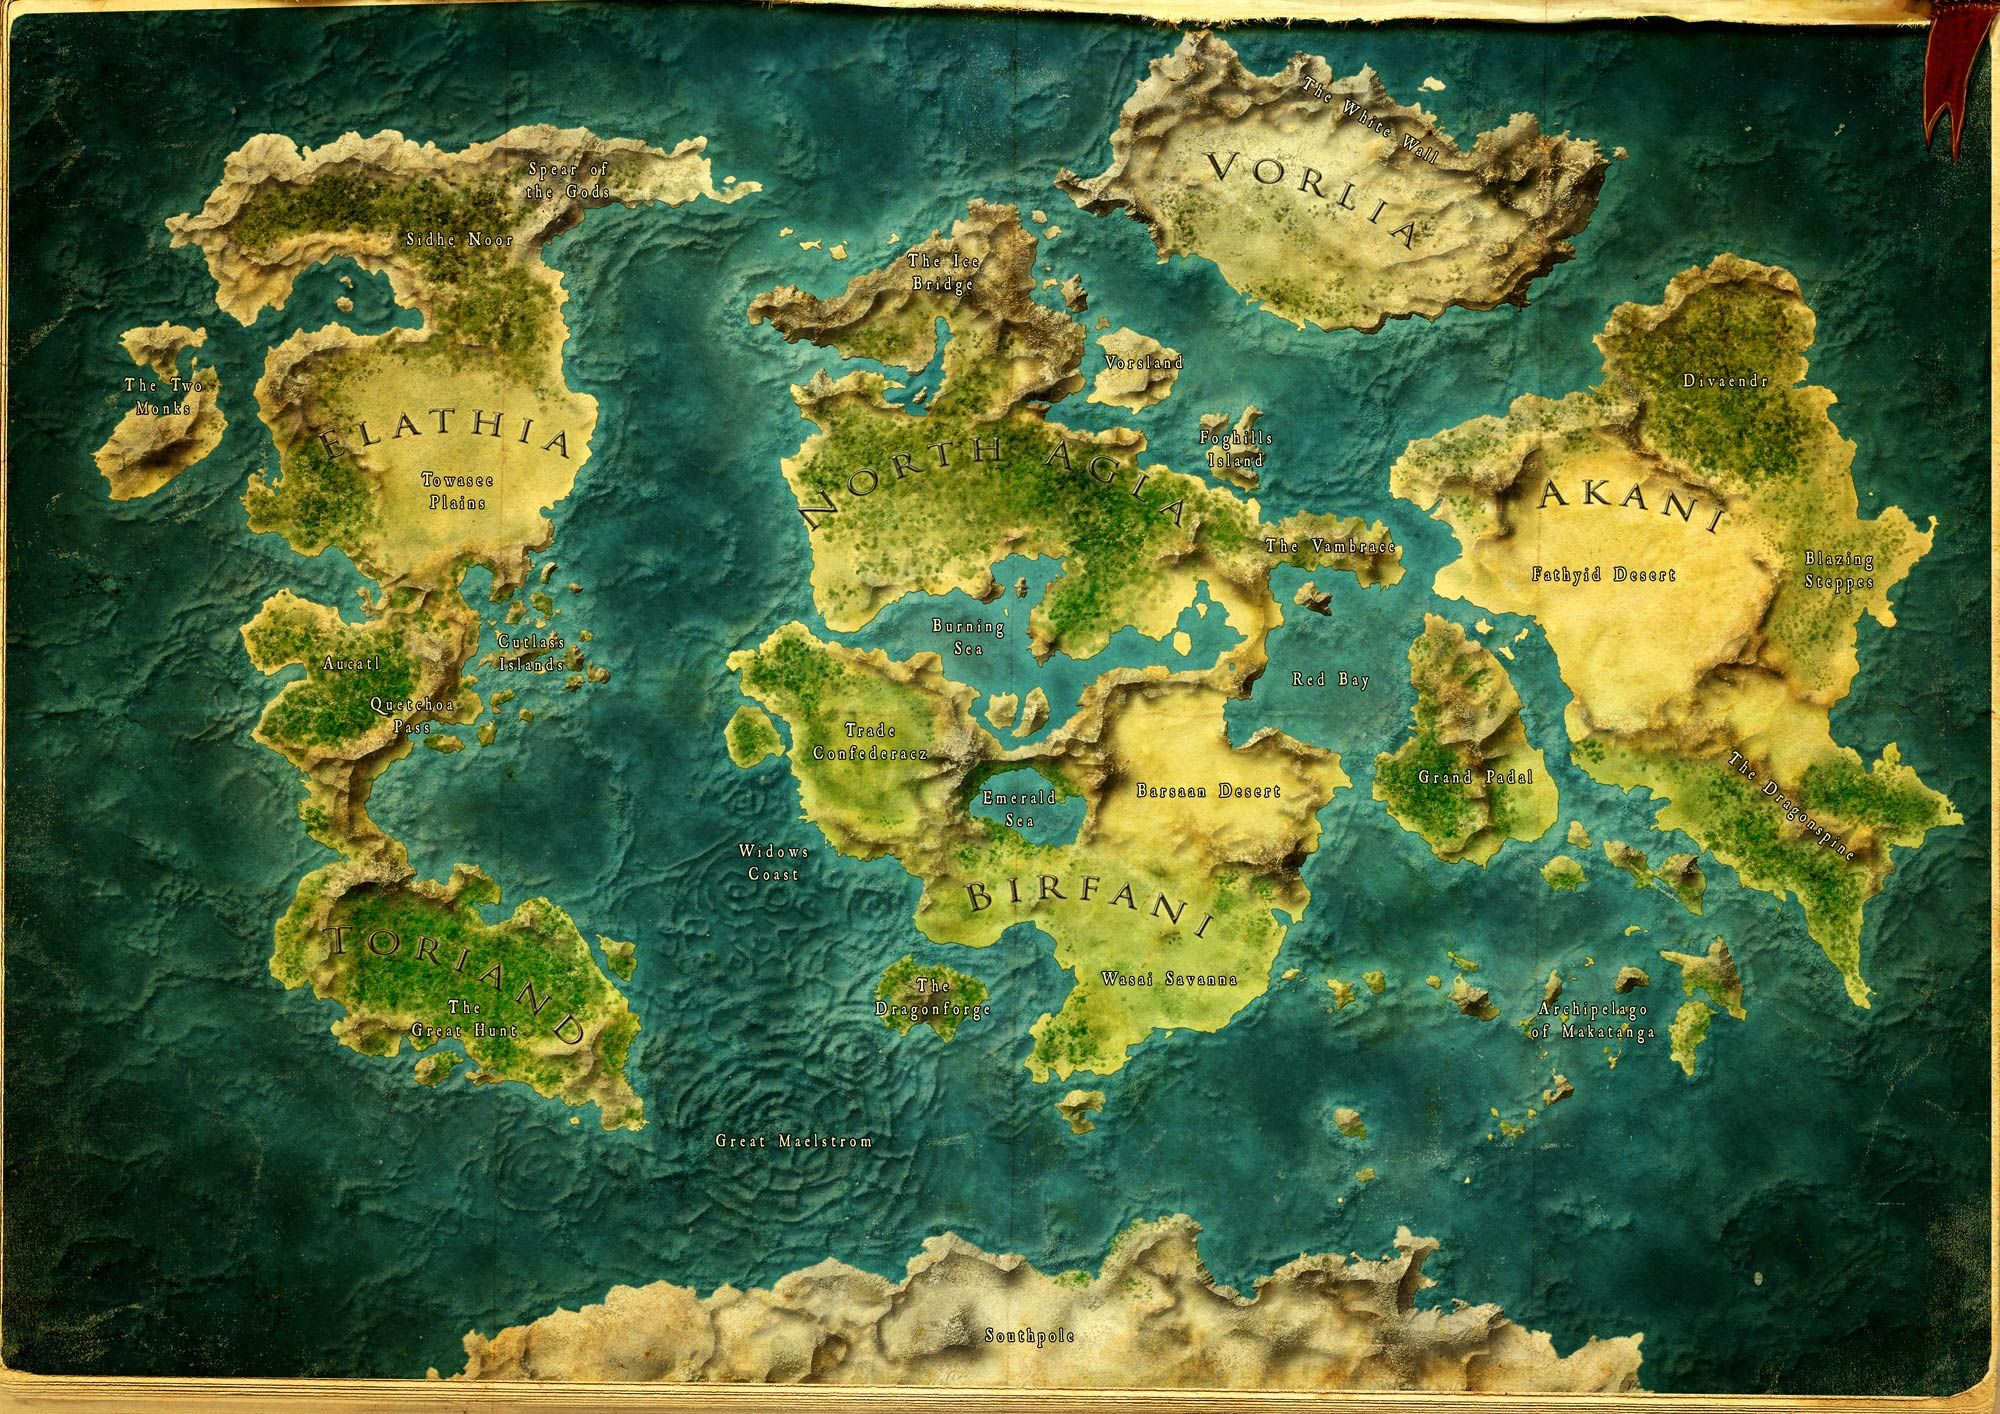 Httpcartographersguildattachmentpattachmentid map for a game worldmap gumiabroncs Images